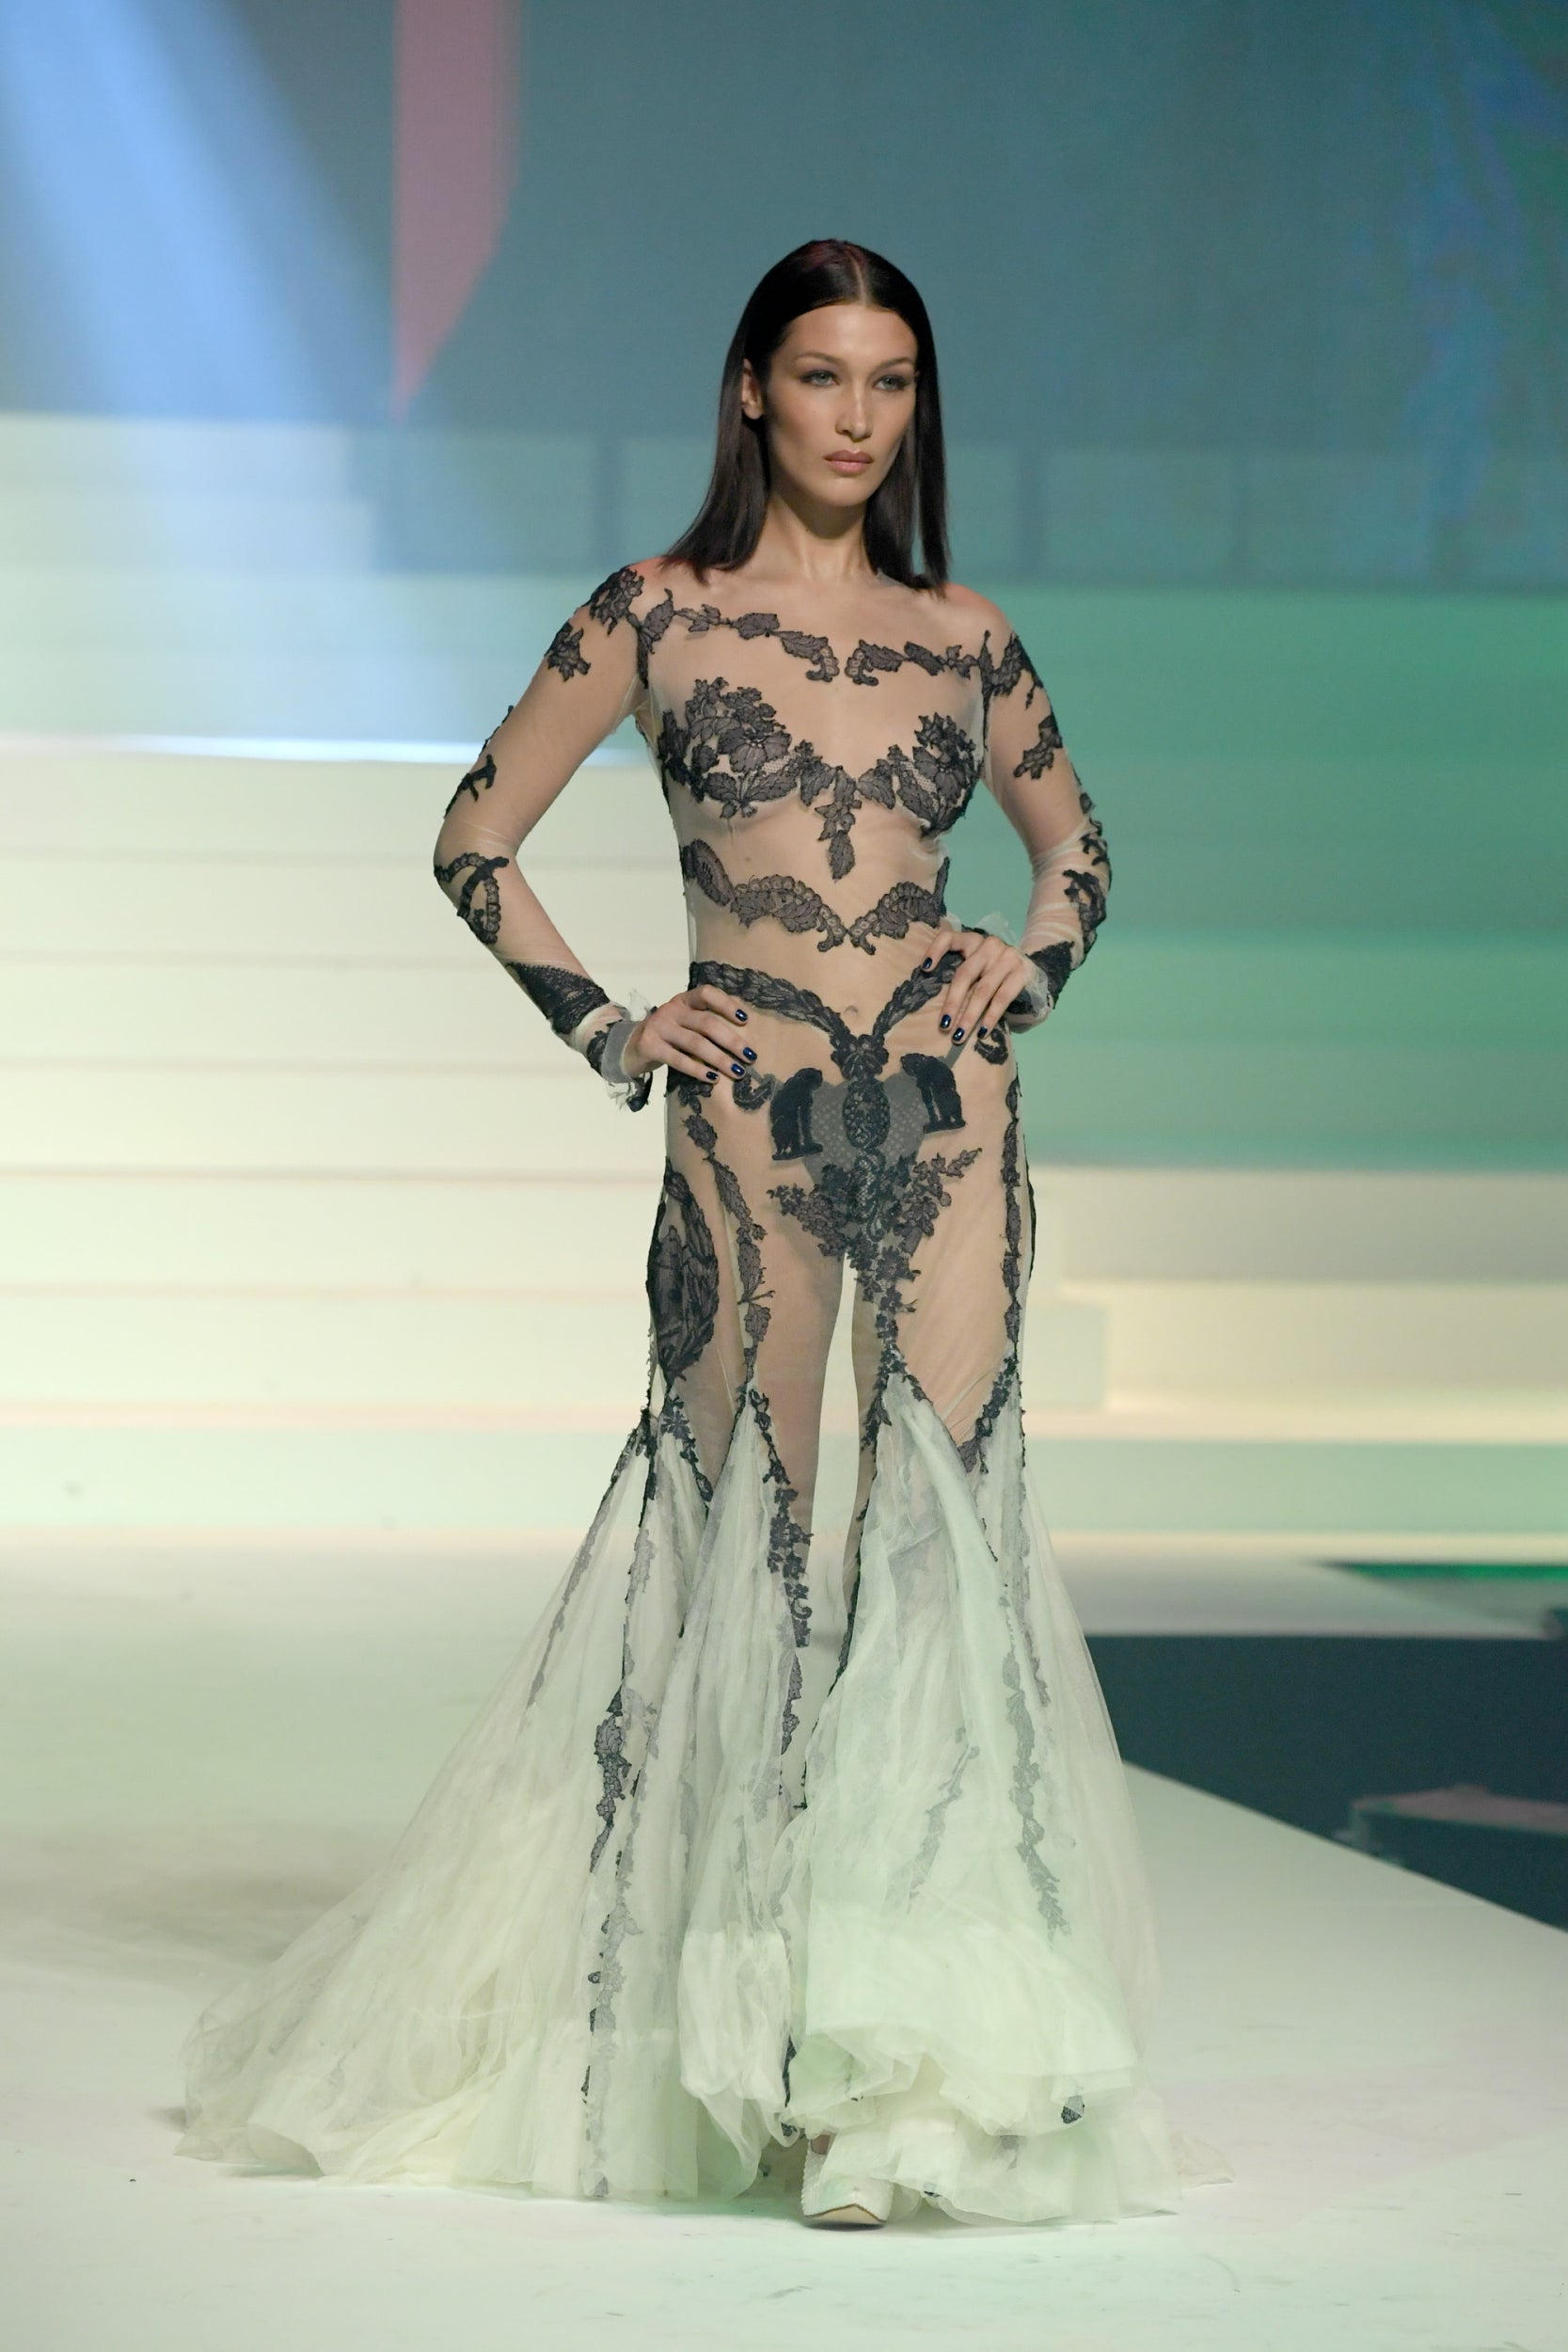 Jean Paul Gaultier Boy George And Bella Hadid Attend Designer S Final Fashion Show The Independent